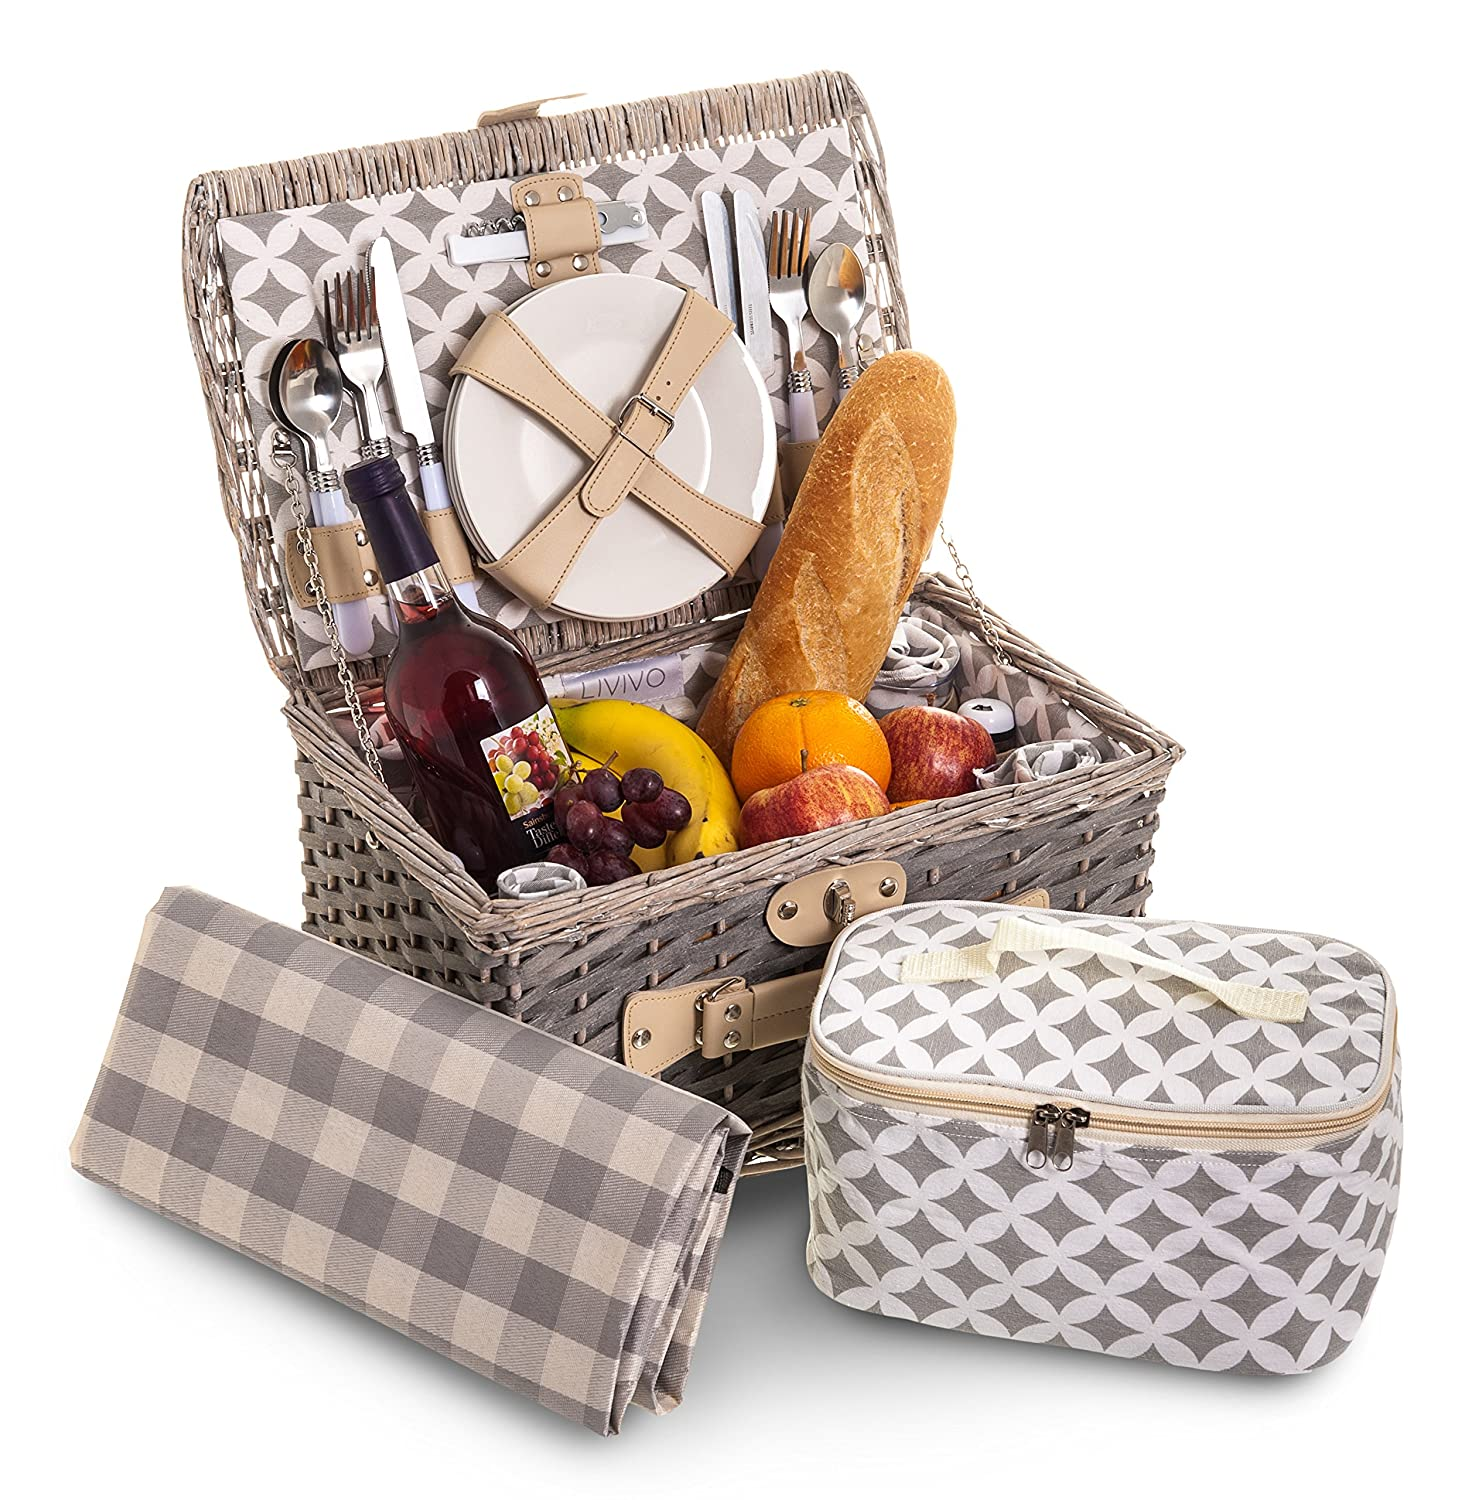 Fineway 4 Person Traditional Picnic Wicker Hamper Willow Basket With Cooler Bag – Set Includes Wicker Picnic Basket, With Ceramic Plates, Glasses, Cutlery, Bottle Opener, Napkins and Cooler Bag and Picnic Blanket – Ideal for Picnics, Camping, Garden Outdo